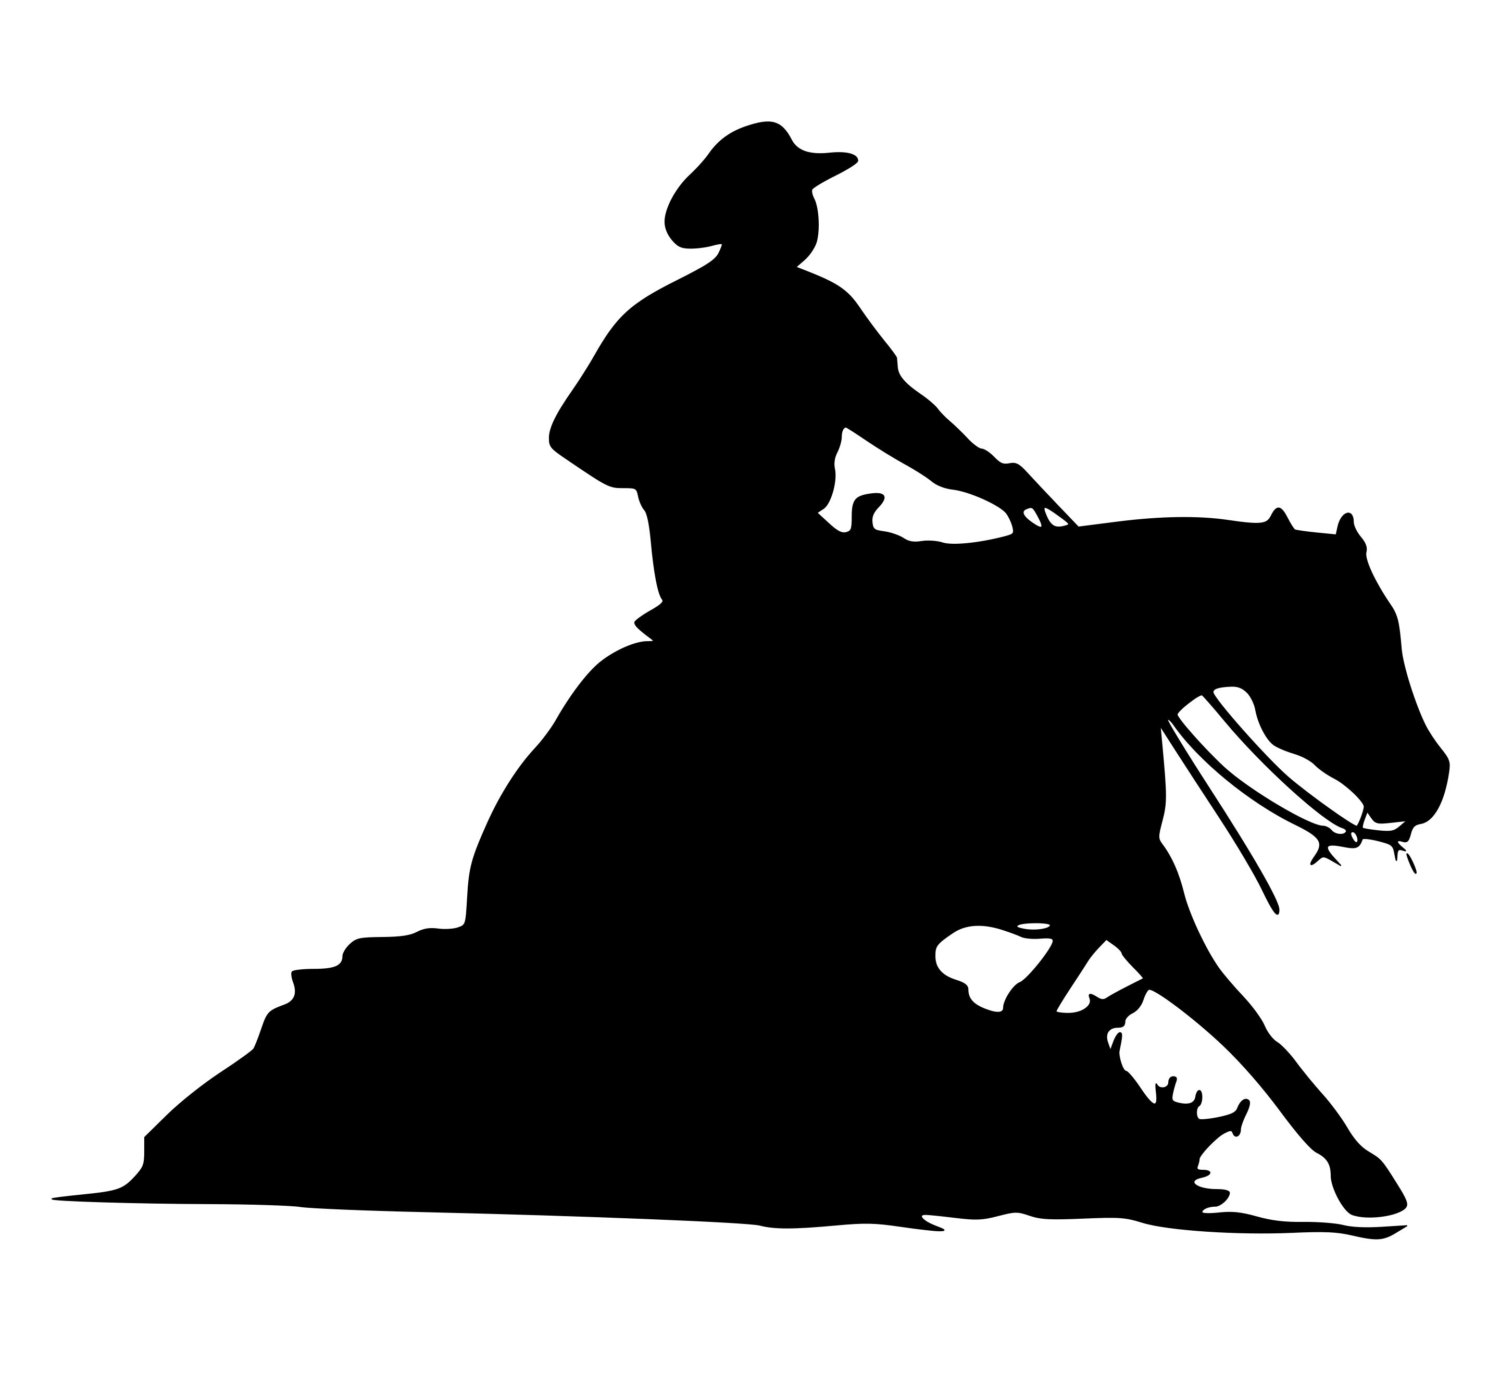 Horse Riding clipart western pleasure #11